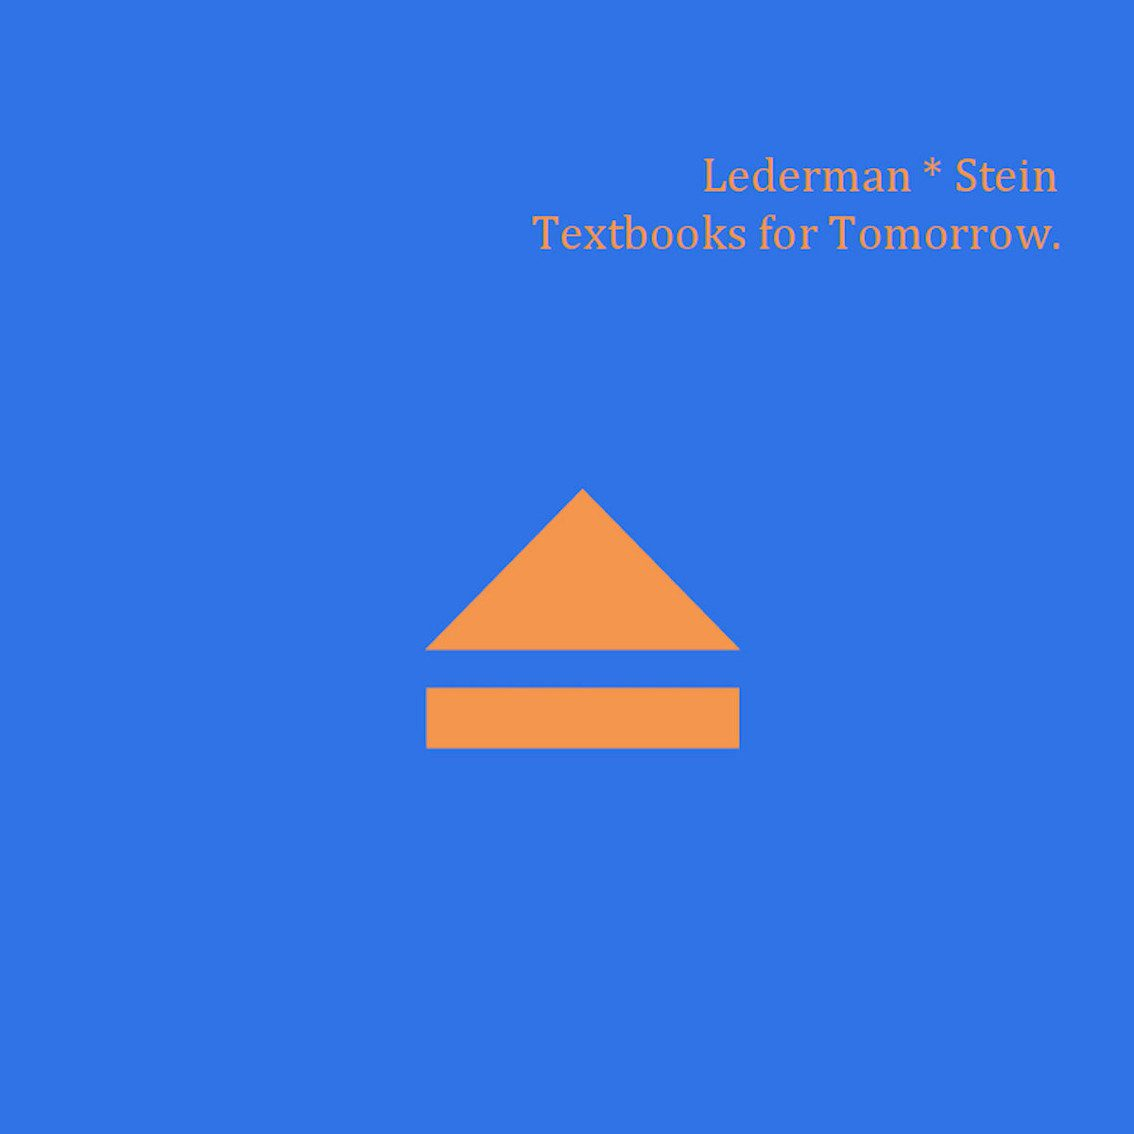 Jean-Marc Lederman and Erik Stein form Lederman * Stein project and release 'Textbooks for Tomorrow' digital EP